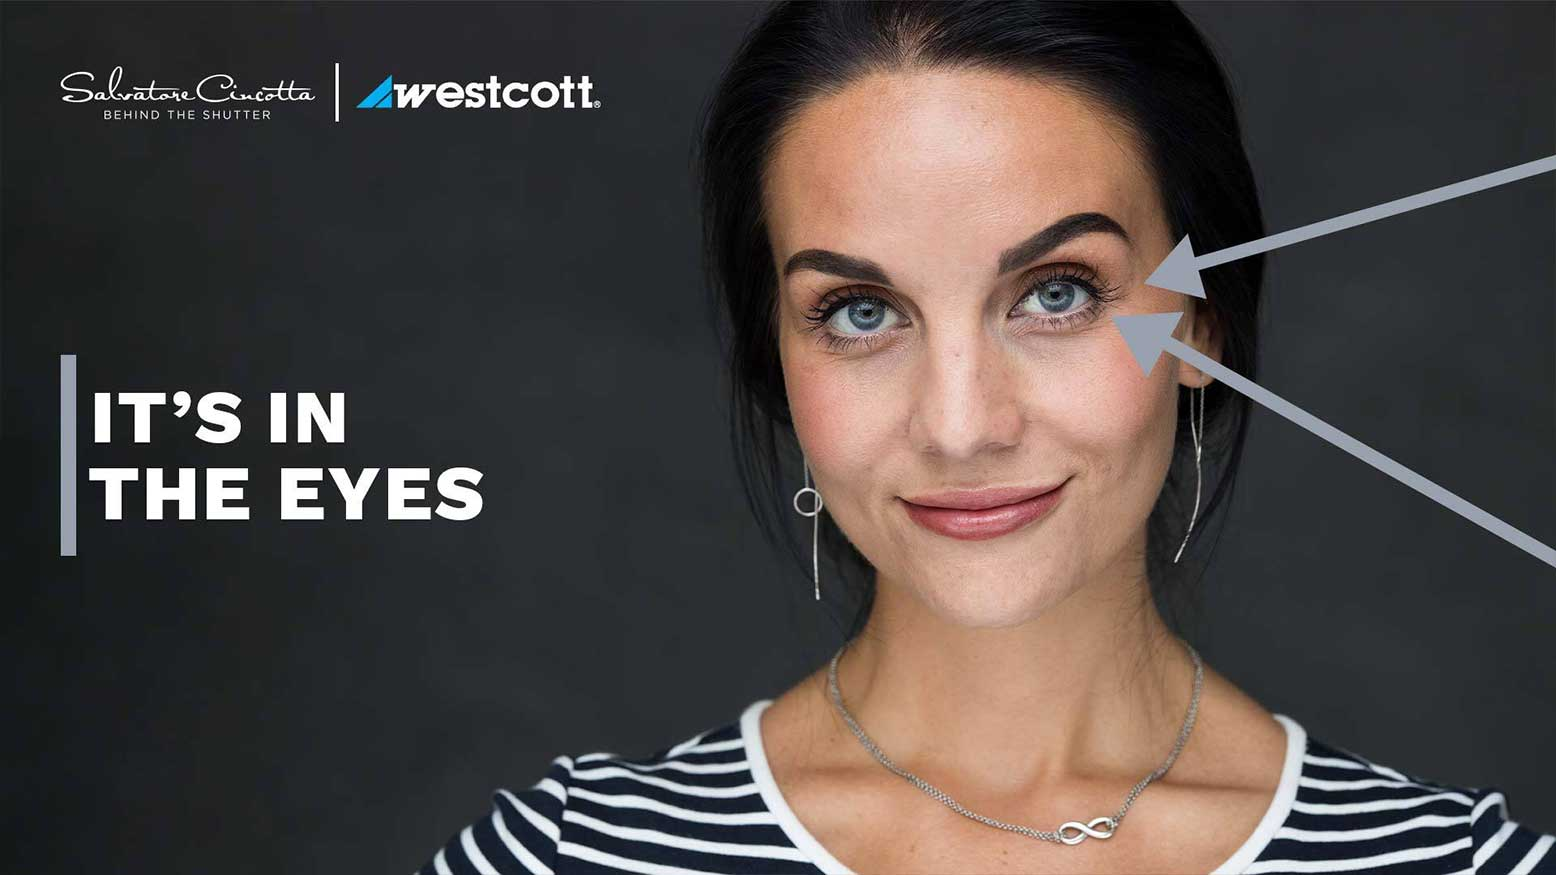 Westcott Eyelighter // Before and After Studio Lighting Photos